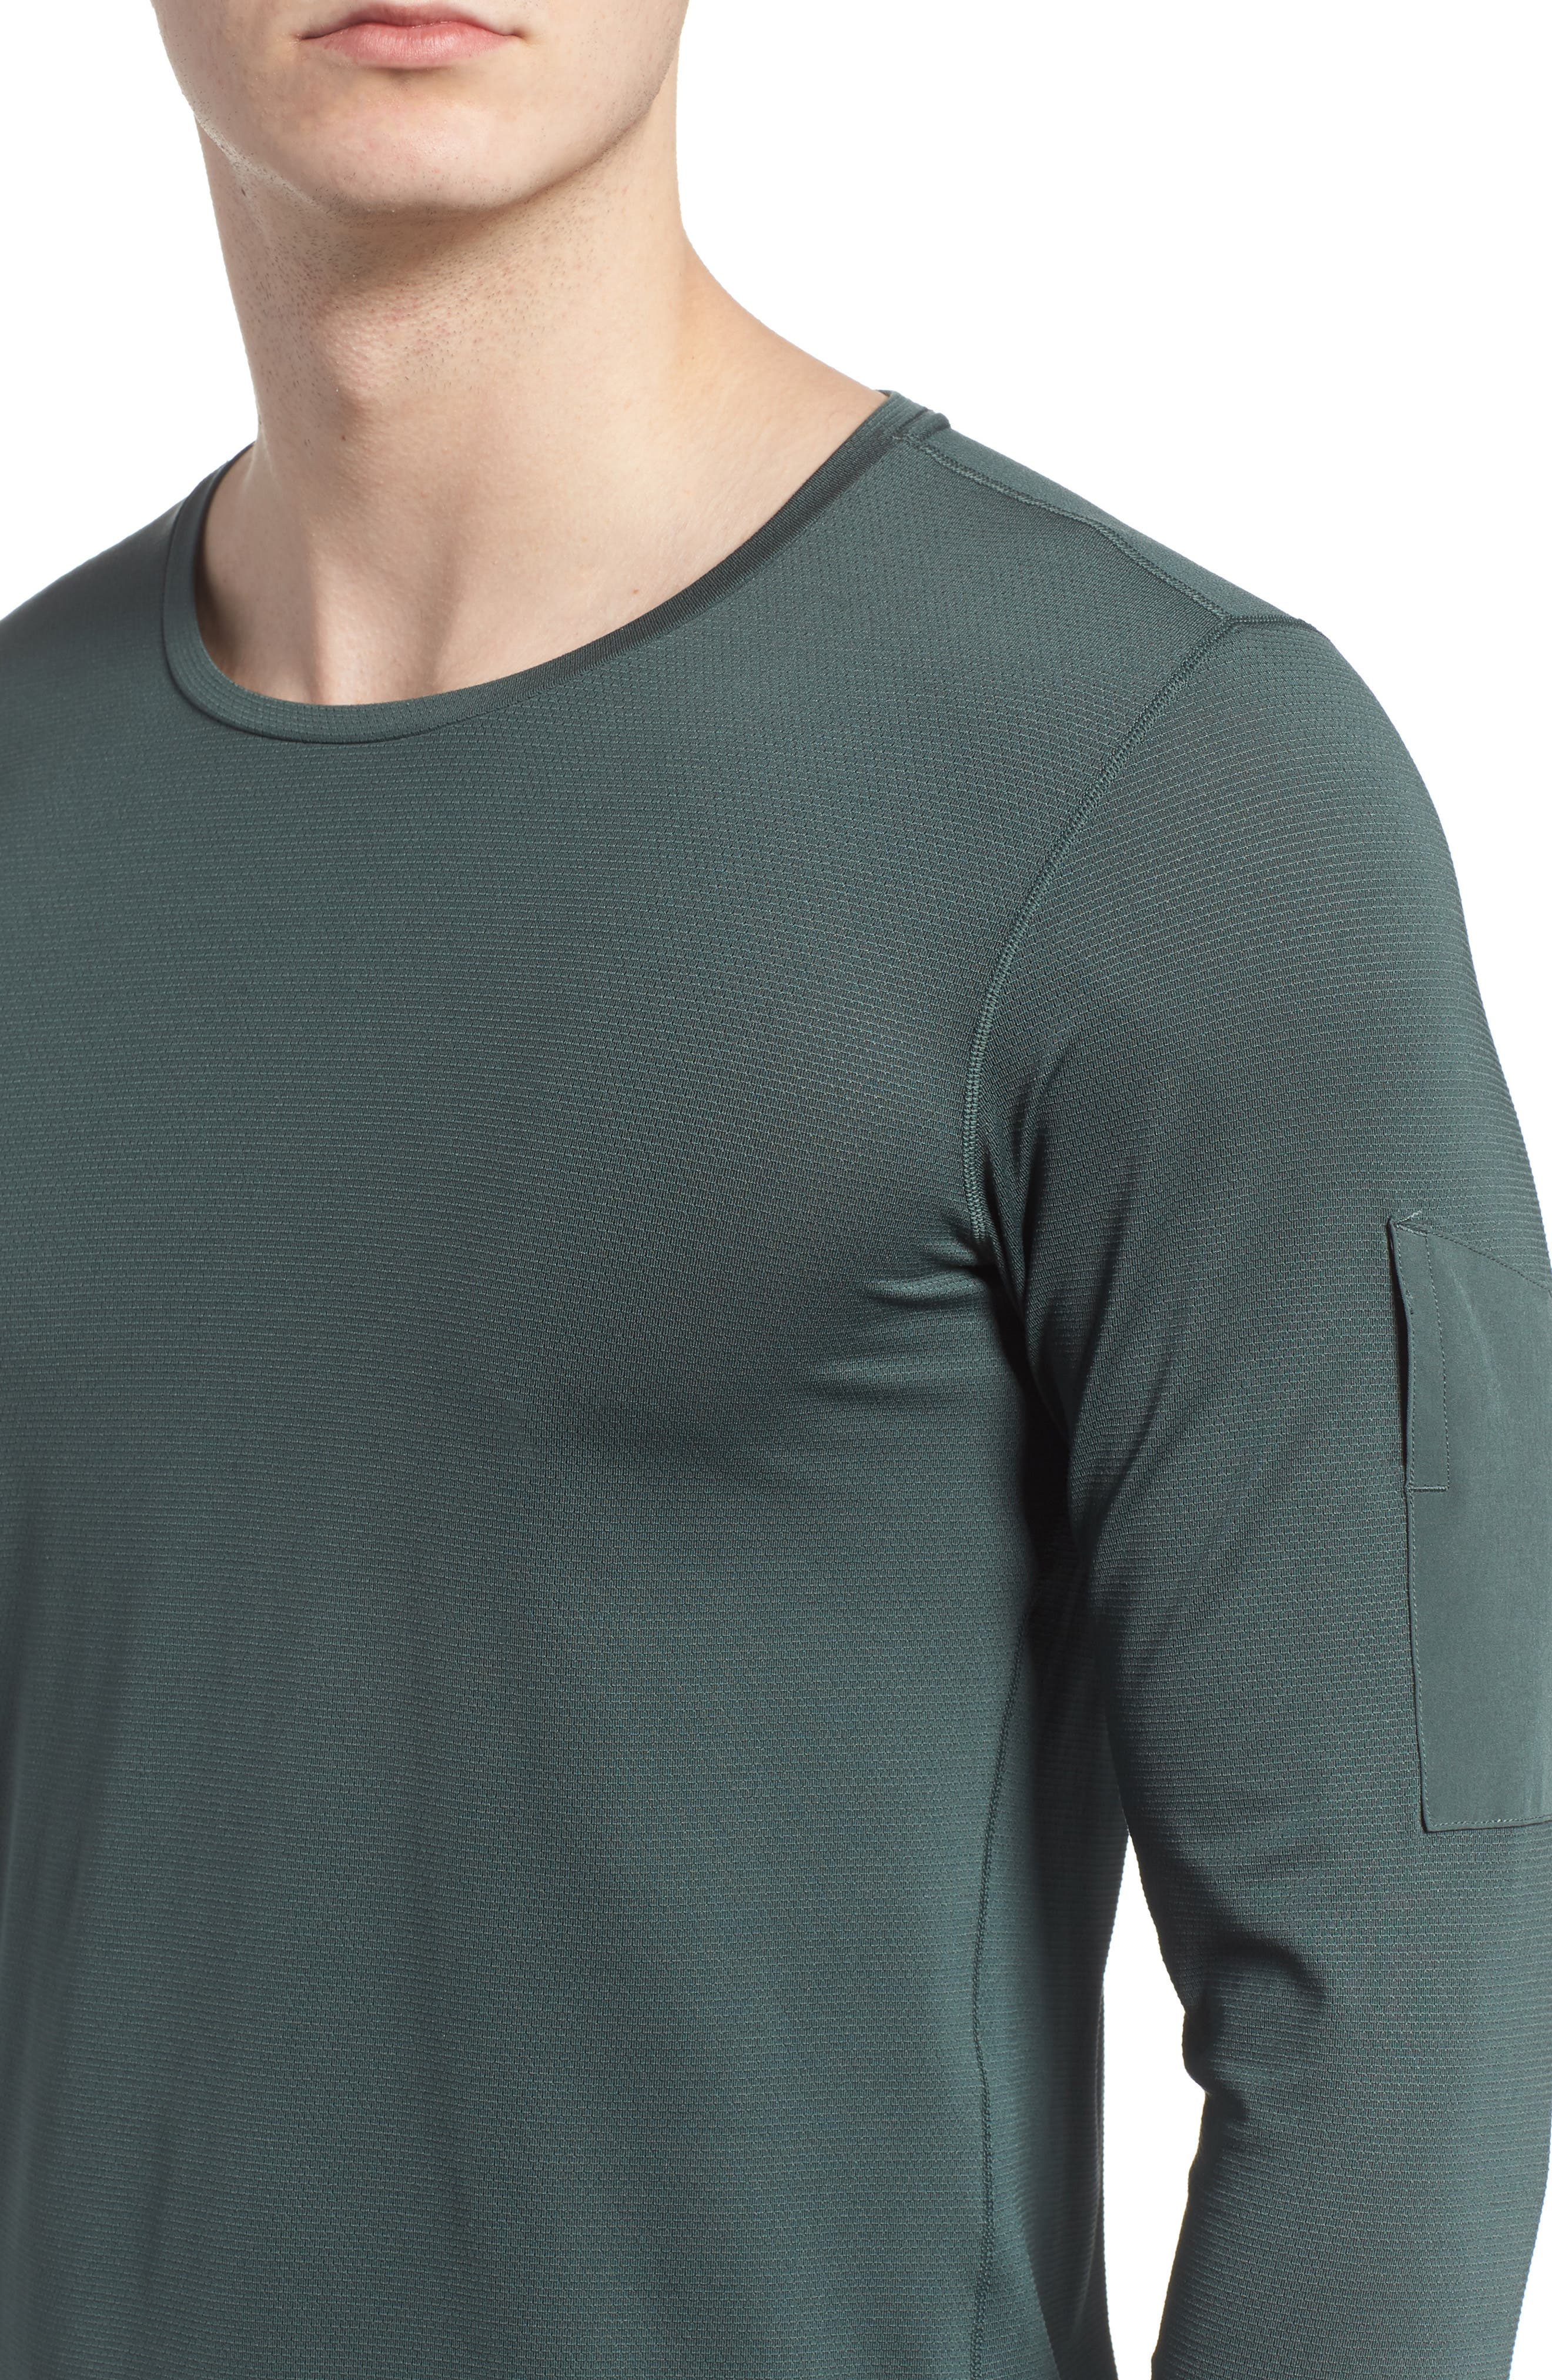 Pro Utility Fitted Training Top,                             Alternate thumbnail 4, color,                             Vintage Green/ Black